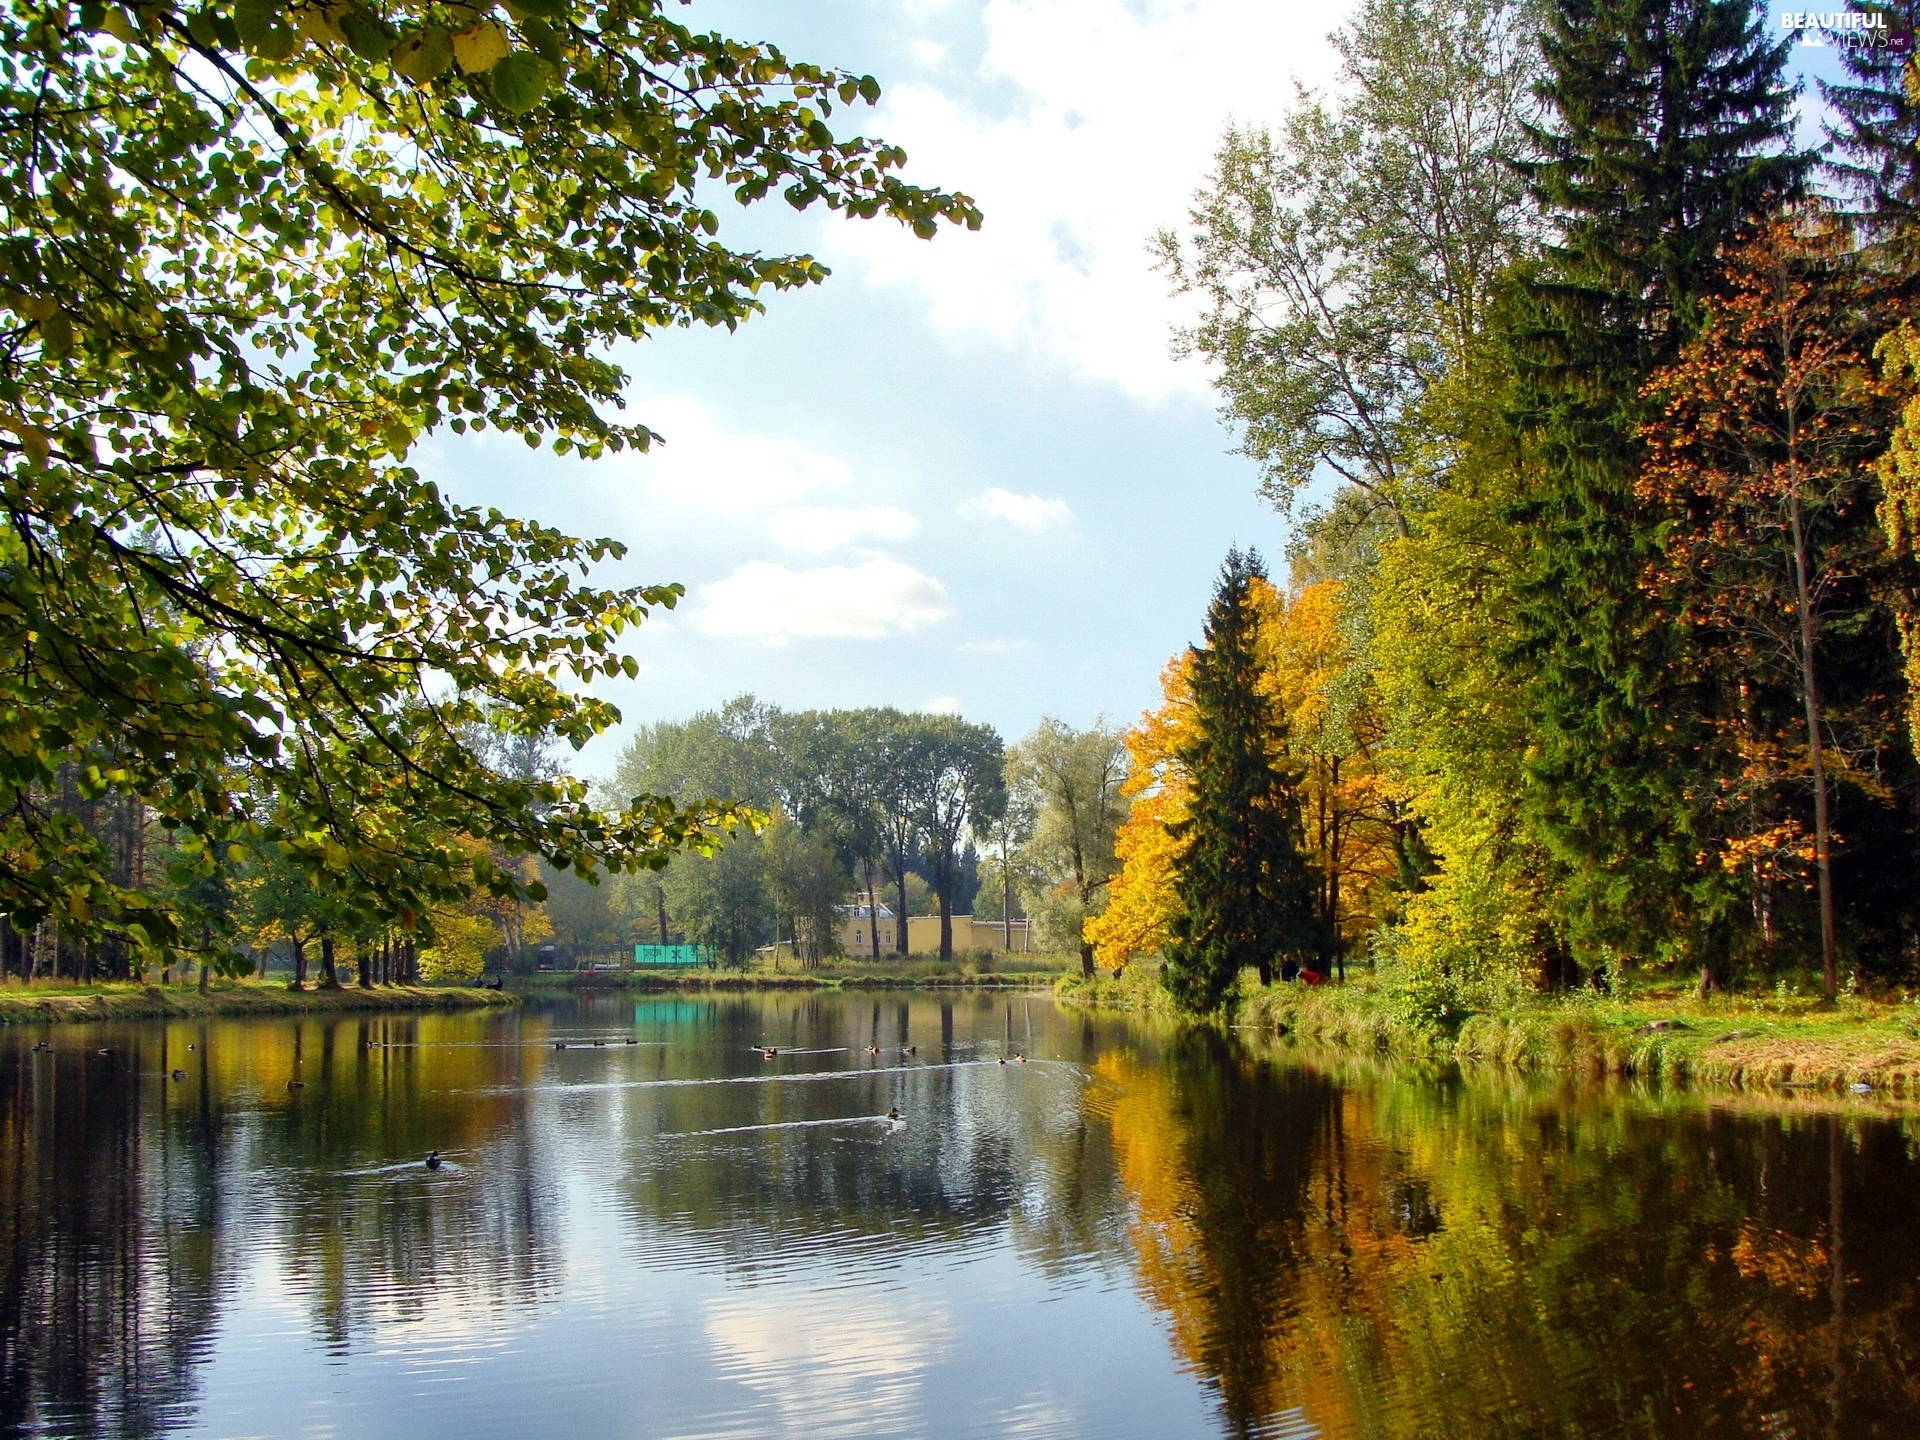 trees, viewes, autumn, lake, Park